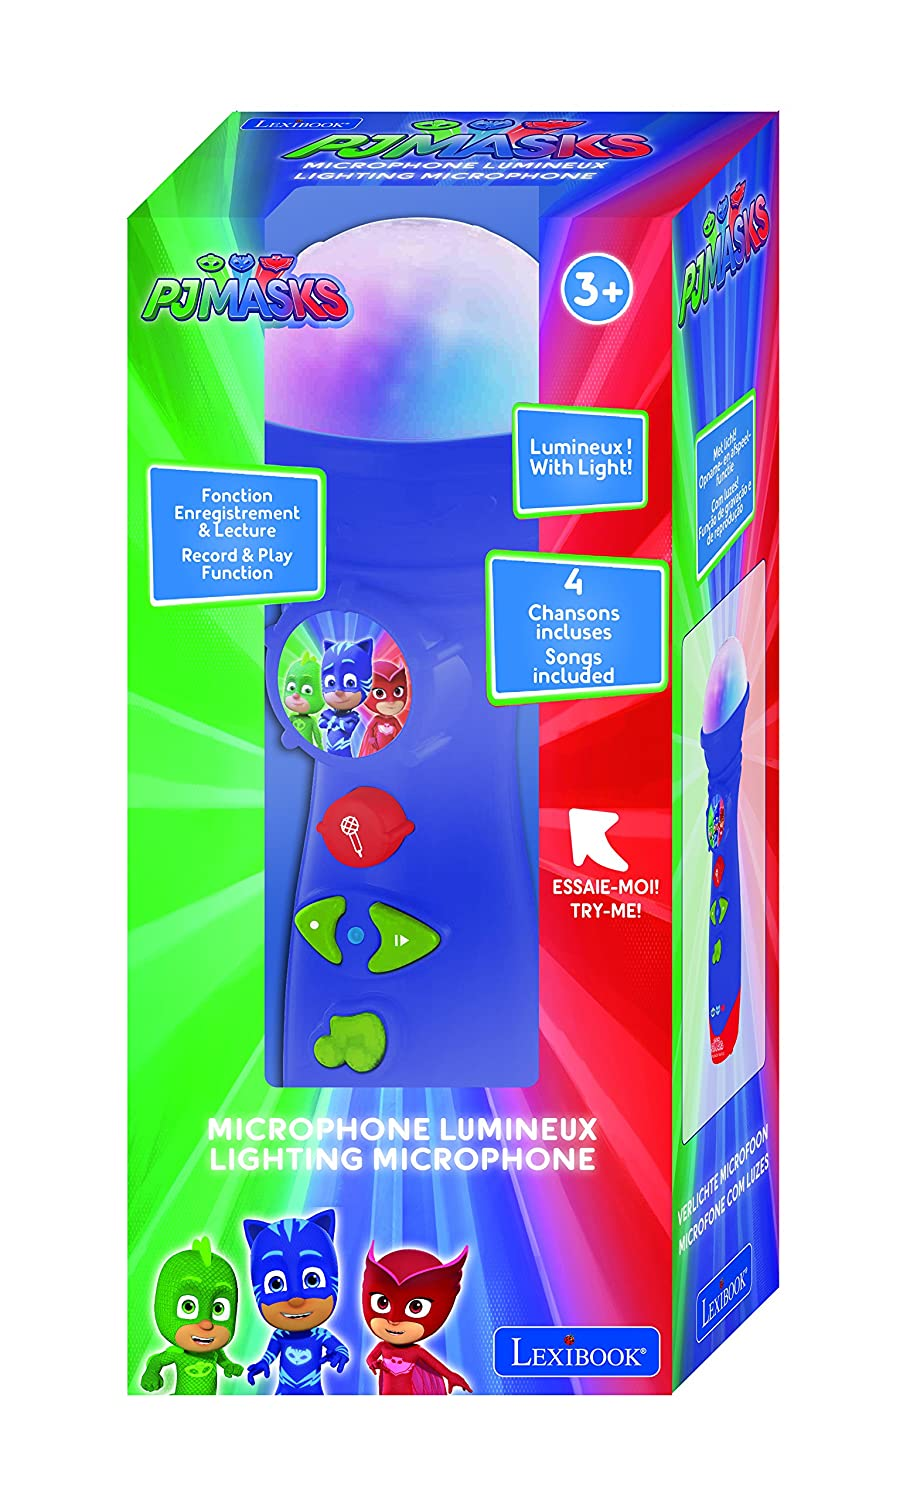 Amazon.es: Pj Mask Masks Micrófono De Juguete Luminoso, Color Azul (Lexibook MIC50PJM)